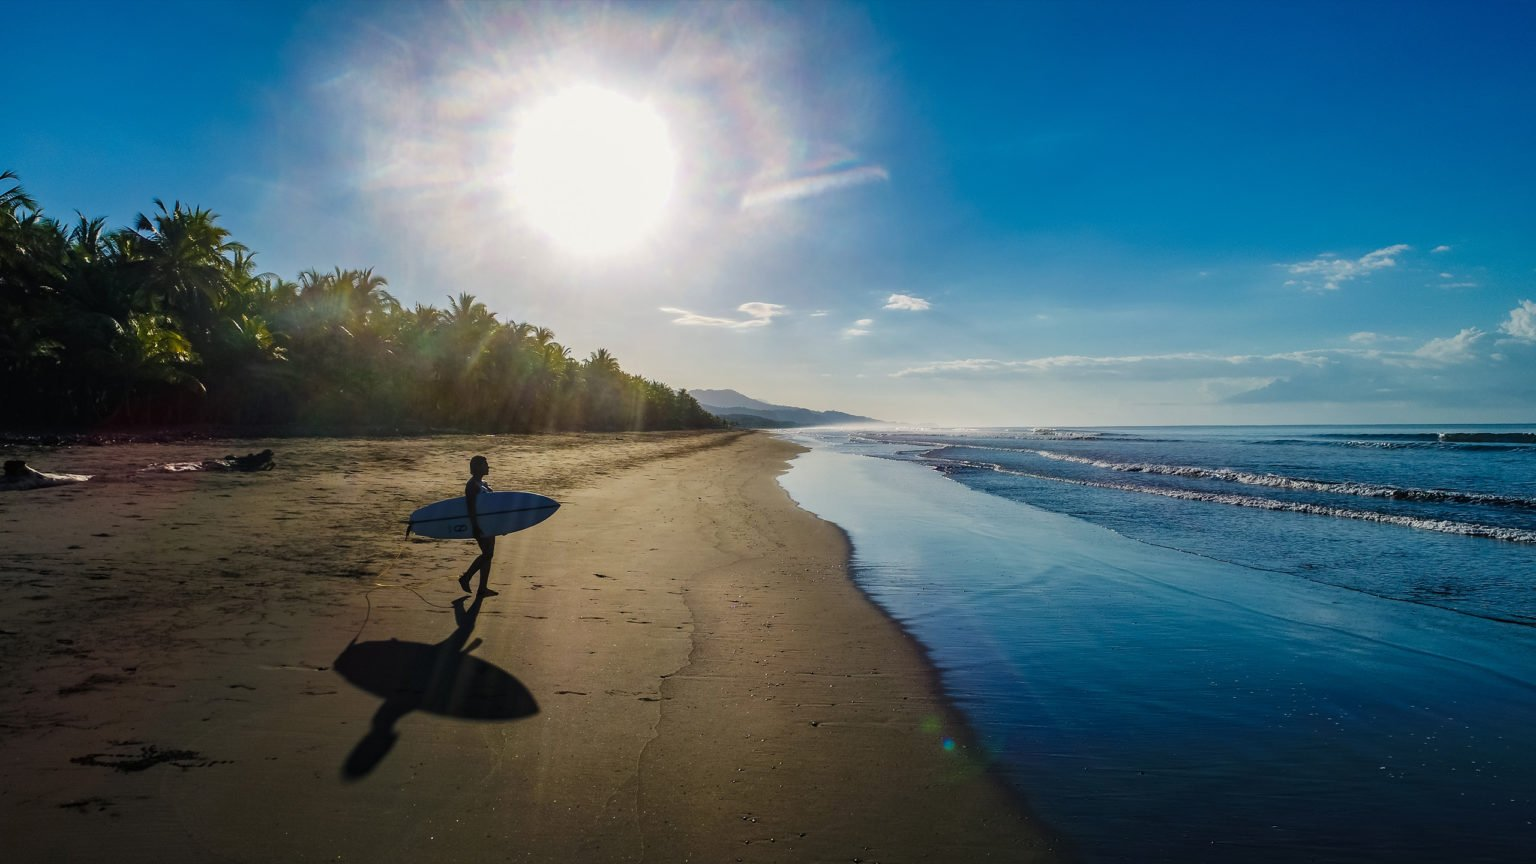 Kalon Surf Silene Ocean Surfing Costa Rica with Slater Designs Surfboard